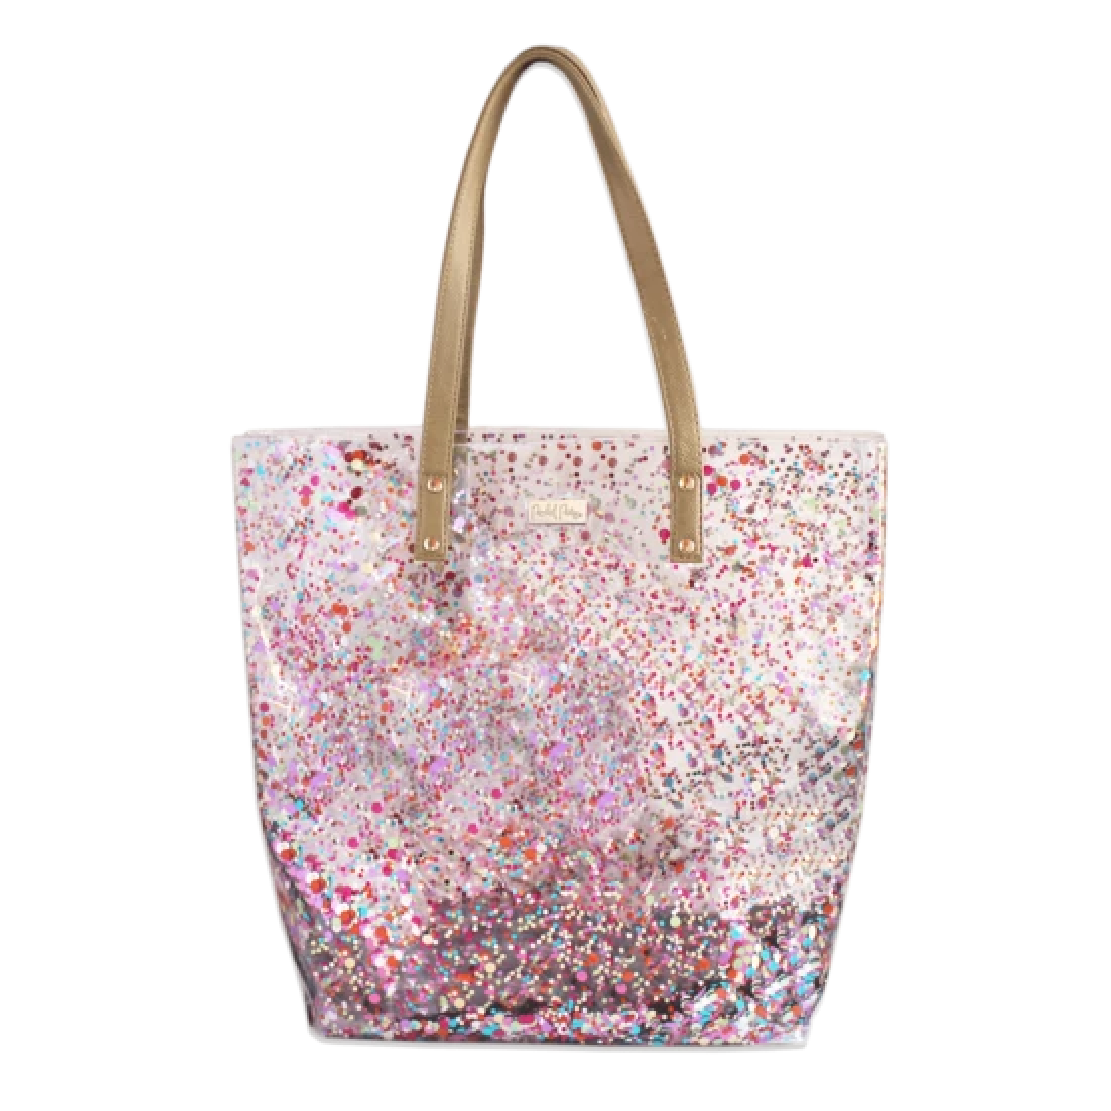 Confetti Tote - Coco and Duckie